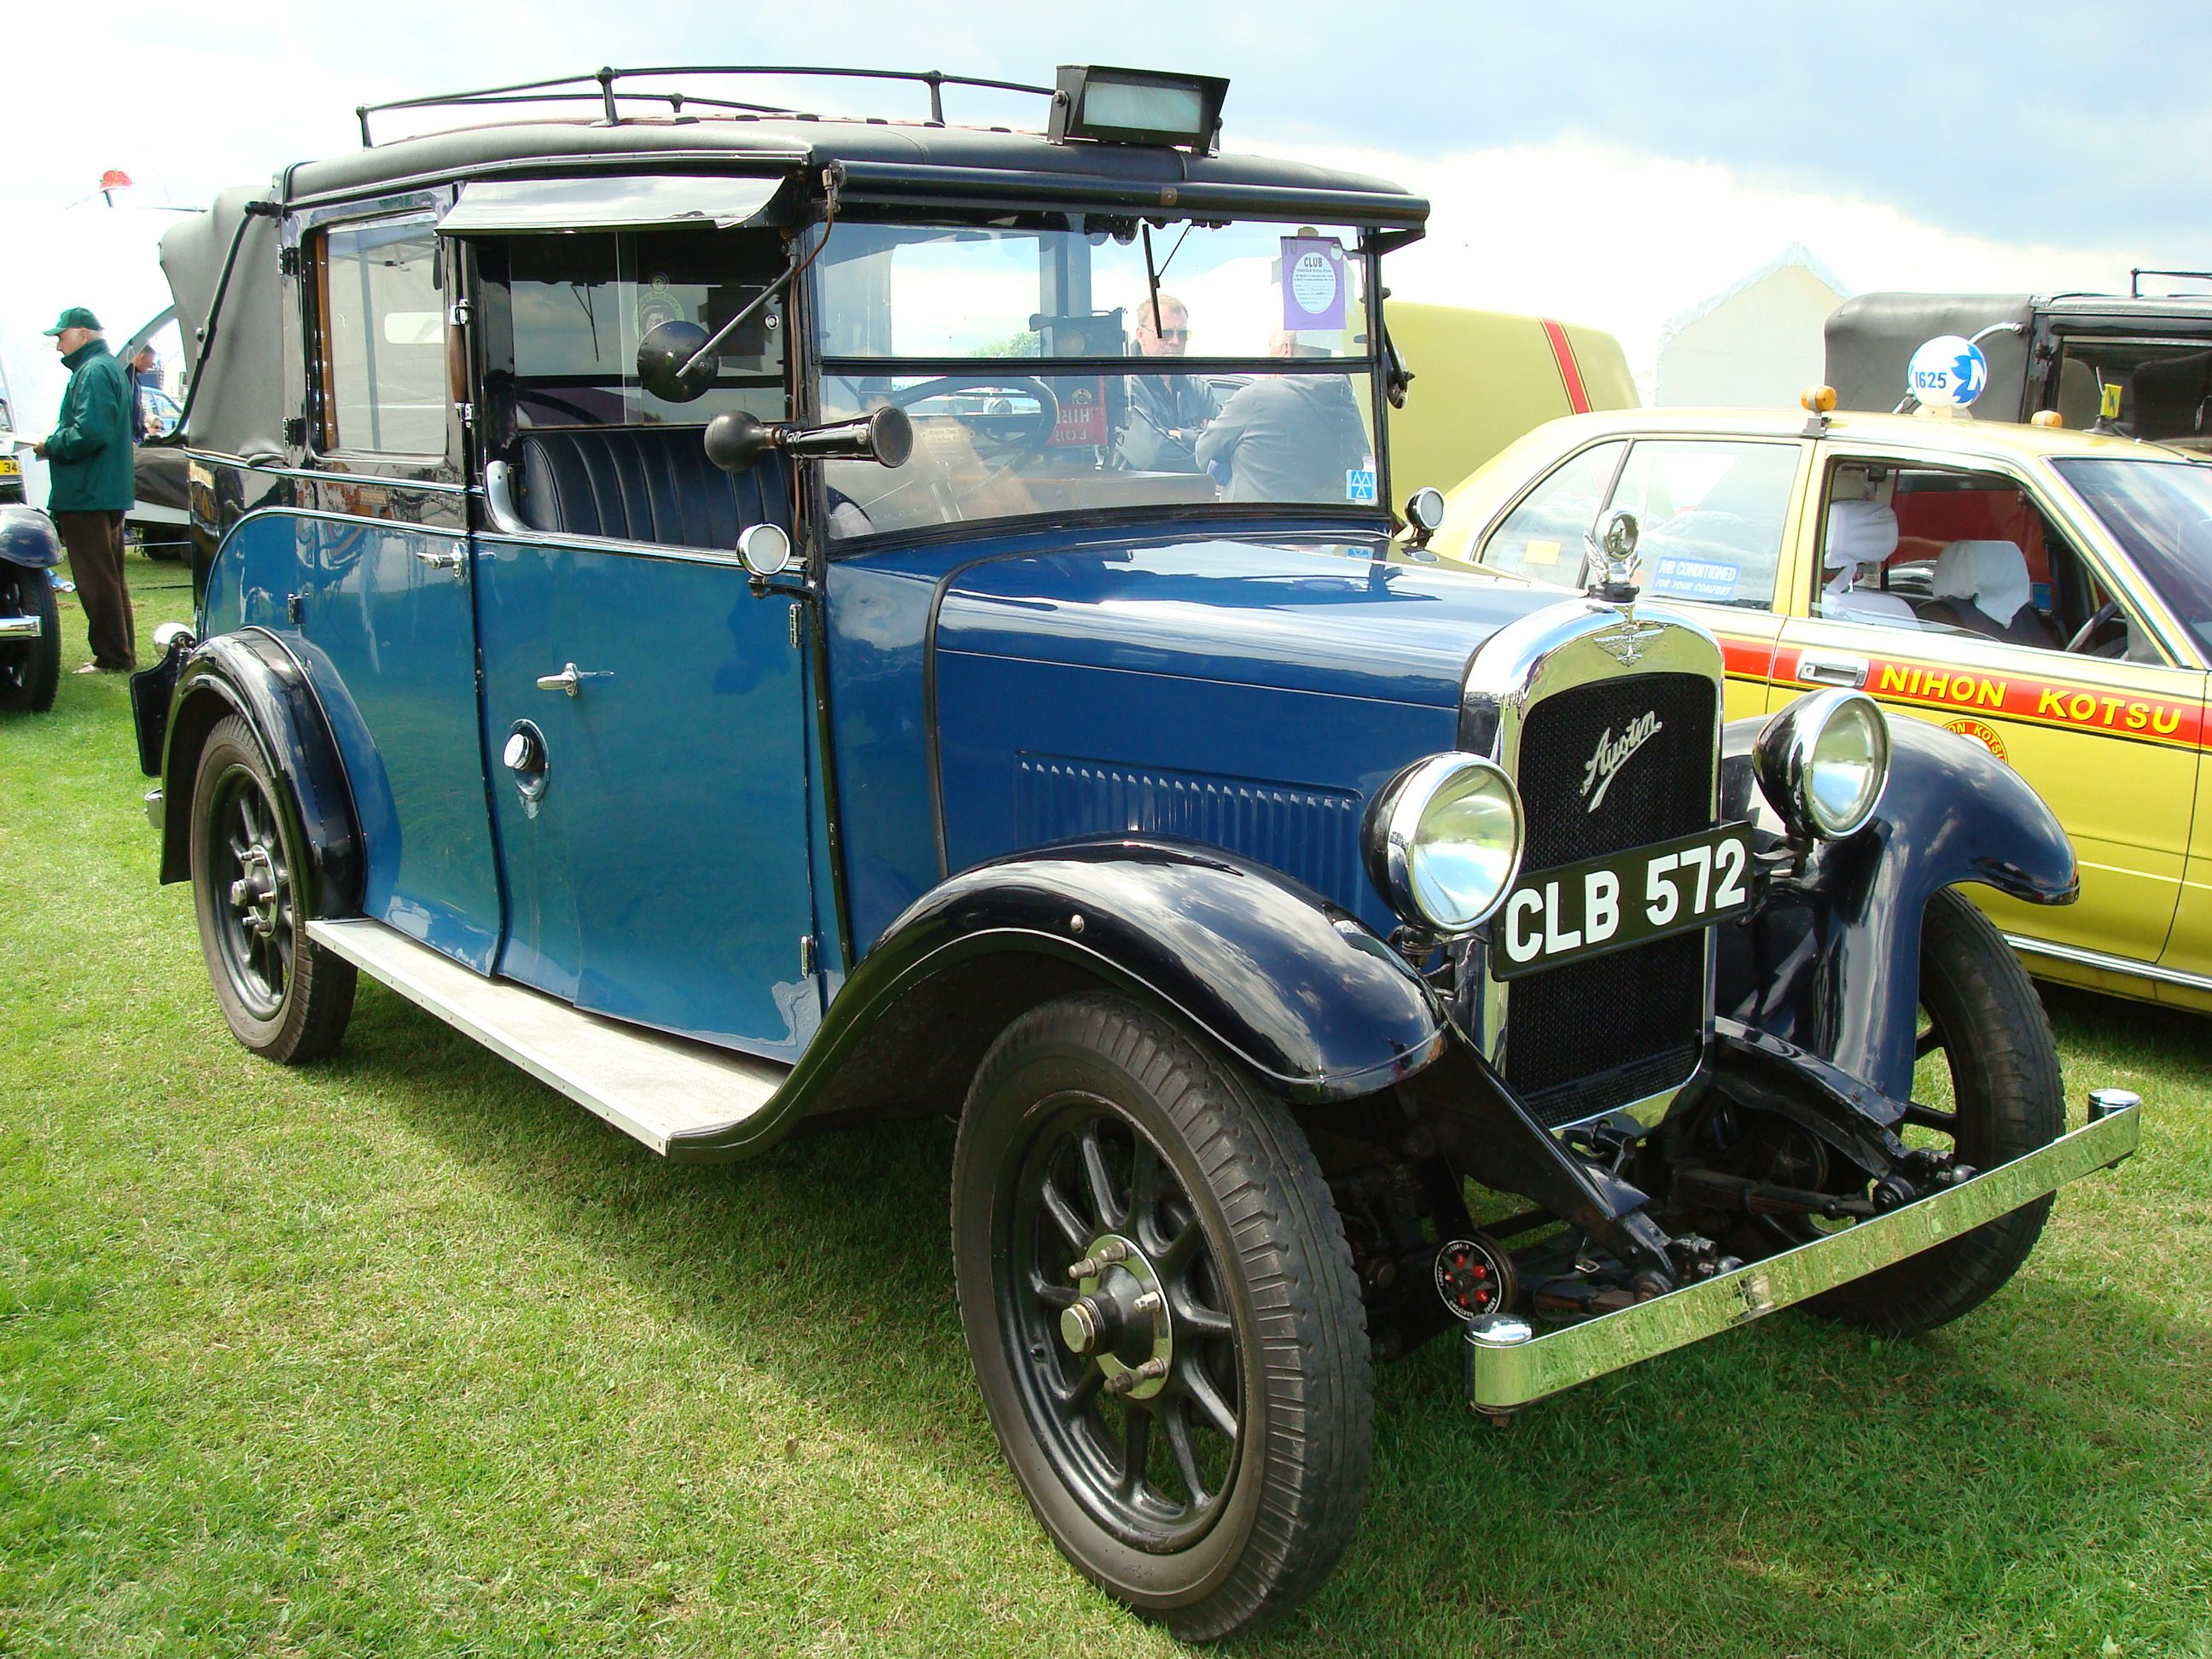 Currently for sale on the Car & Classic website - this 1935 Austin ...